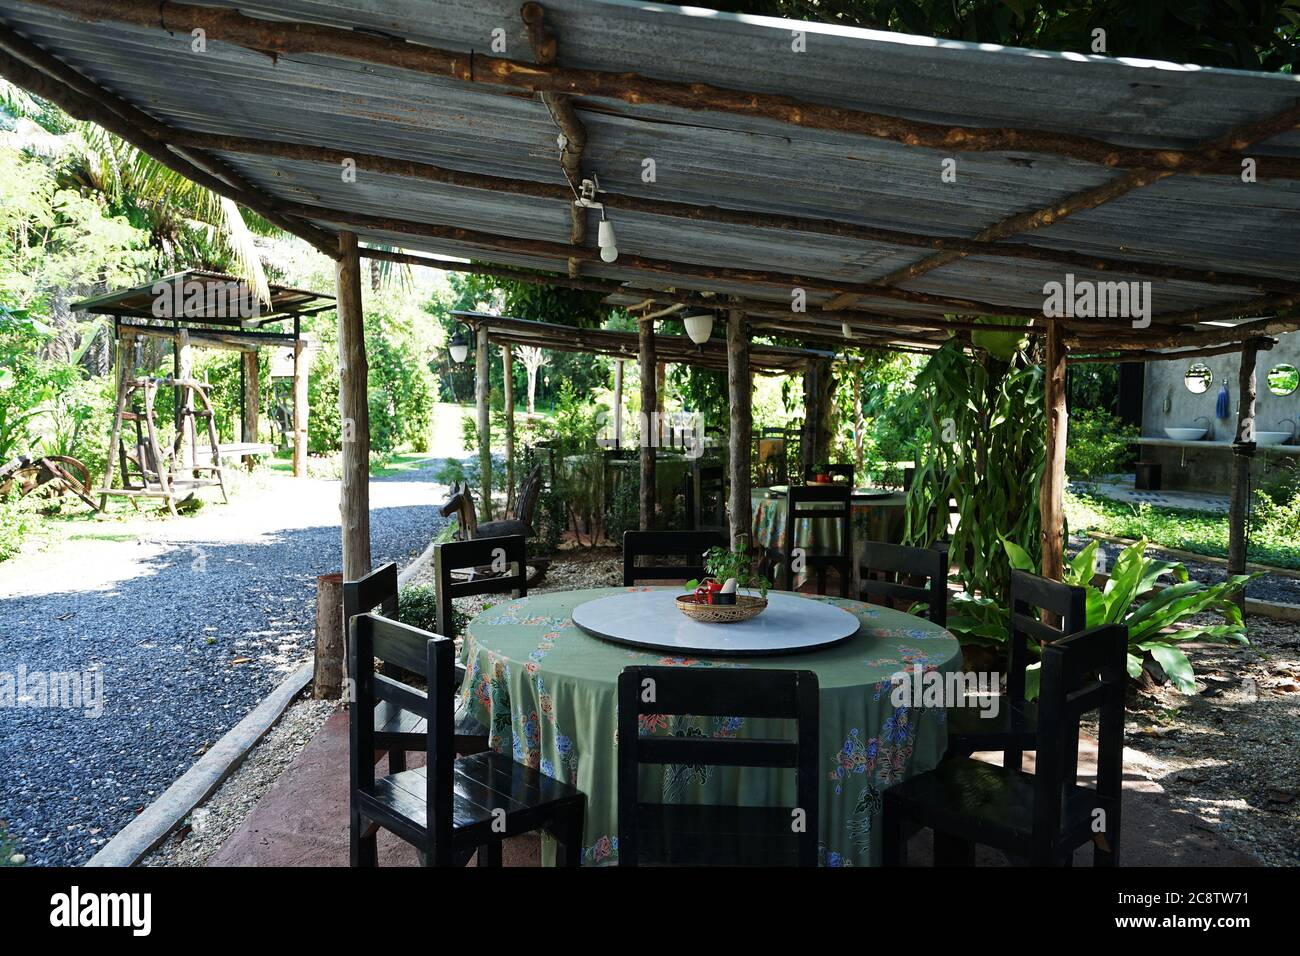 Exterior Design And Restaurant Decoration Of Outdoor Dining Seats Decorated With Wooden Vintage Furniture In Green Garden Park Stock Photo Alamy